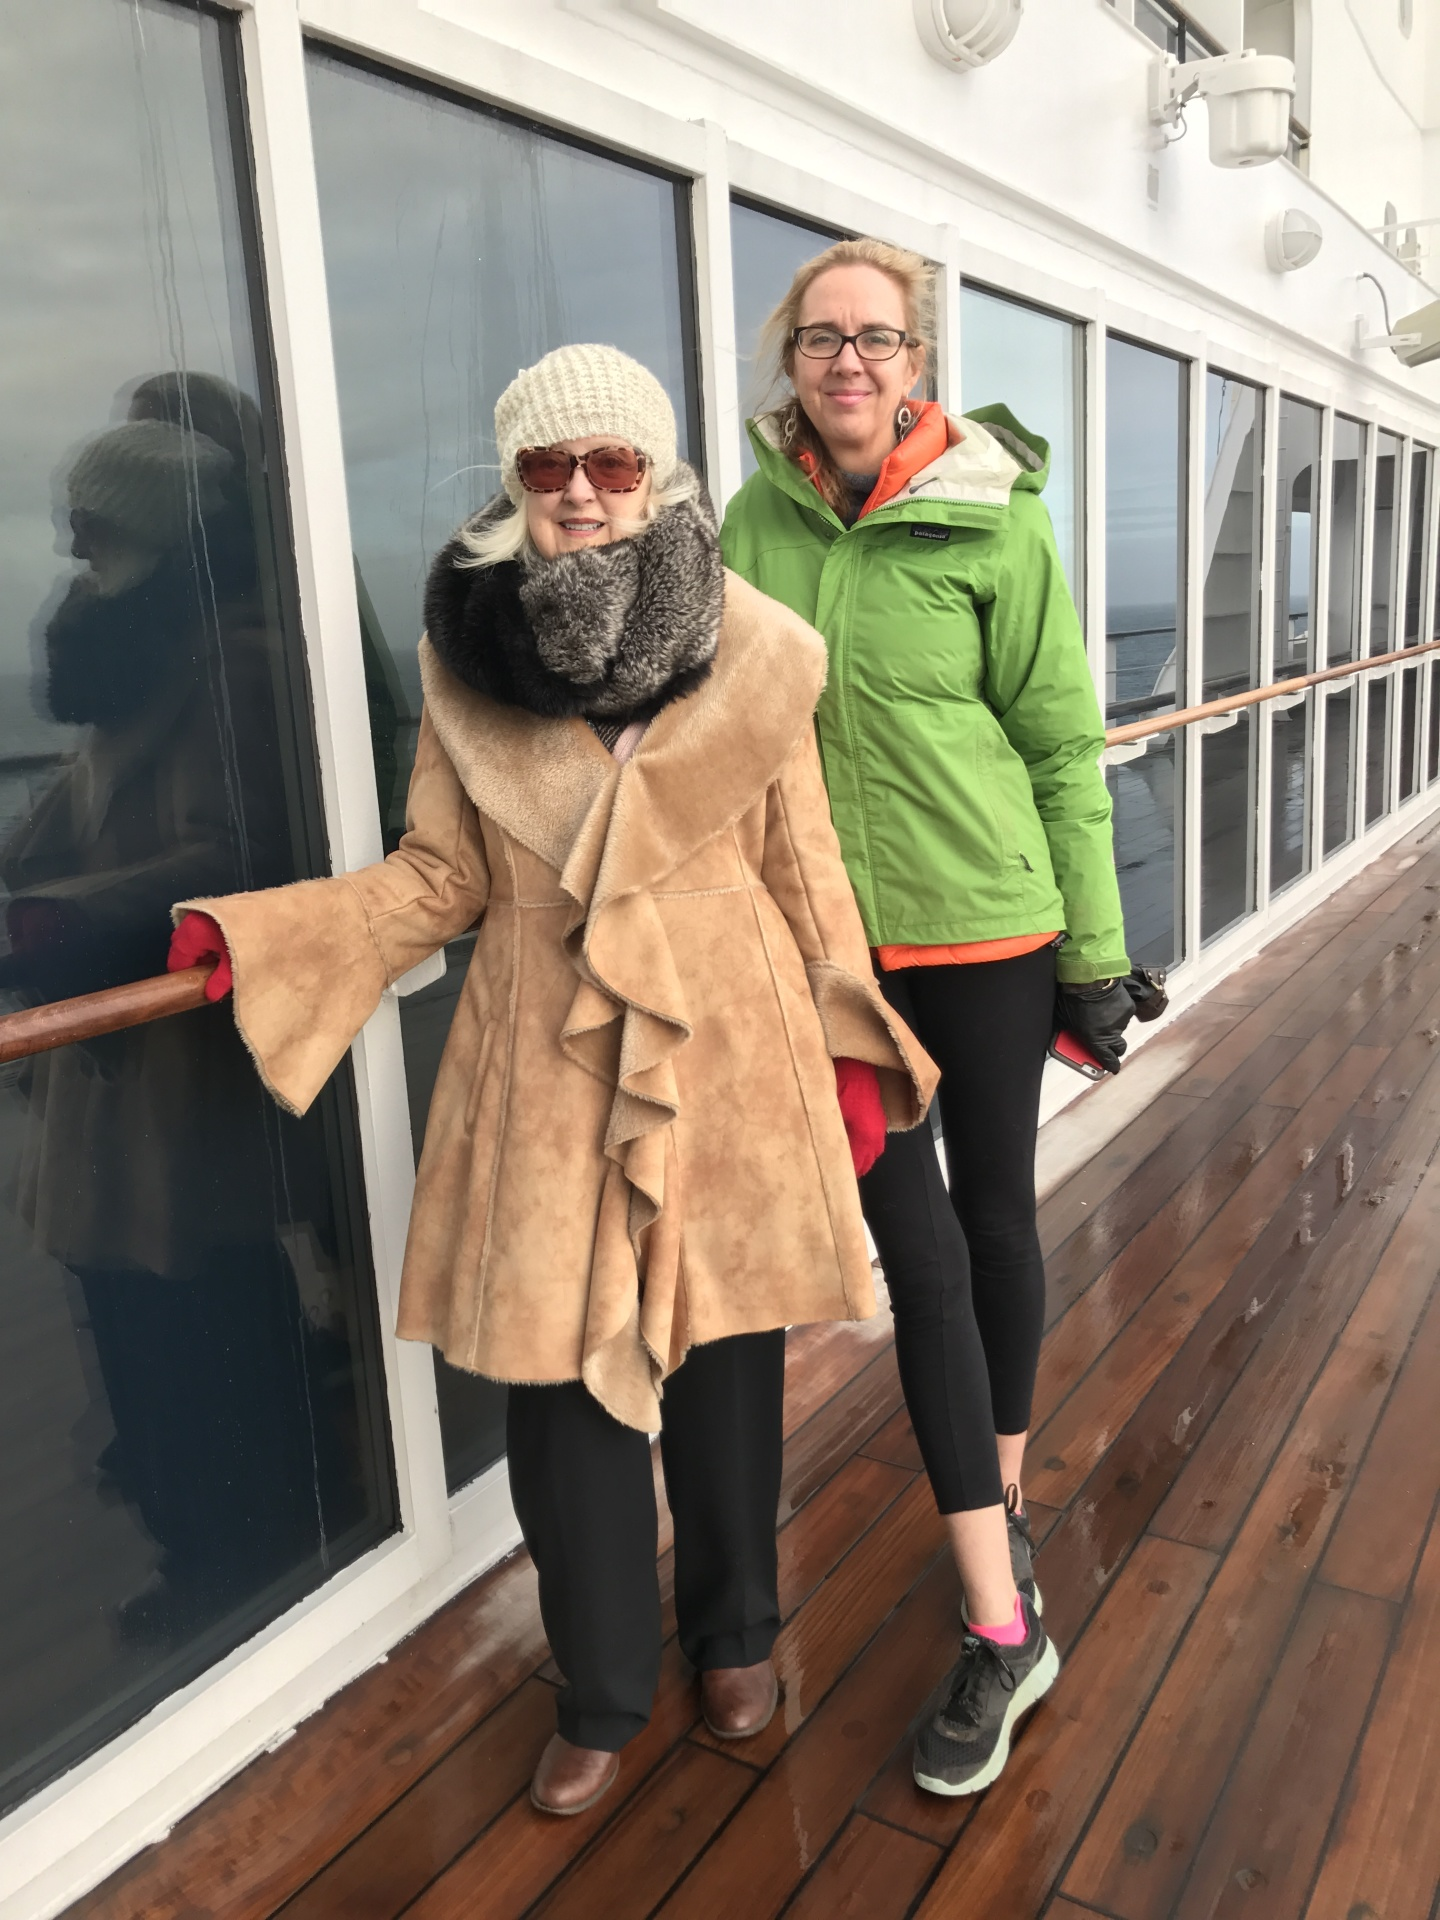 Alison and Me on our transatlantic journey